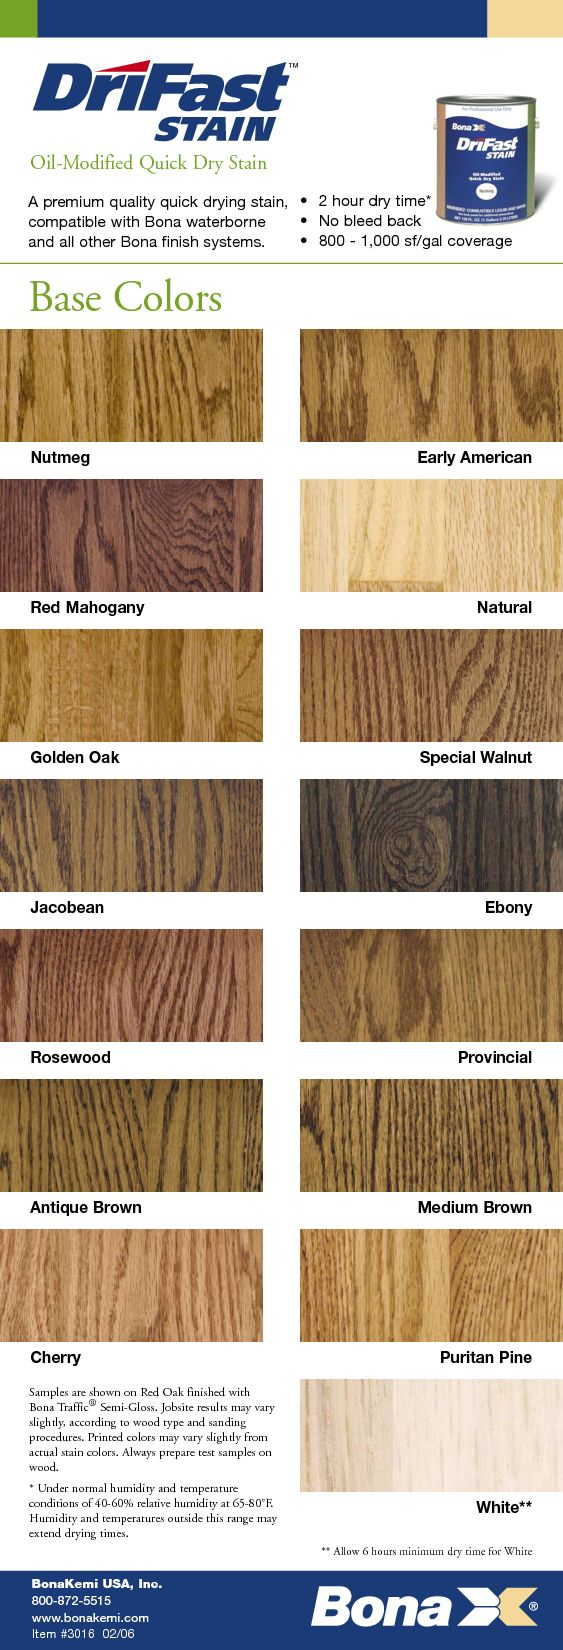 39 Best Images About FLOORS On Pinterest Stains Red Oak